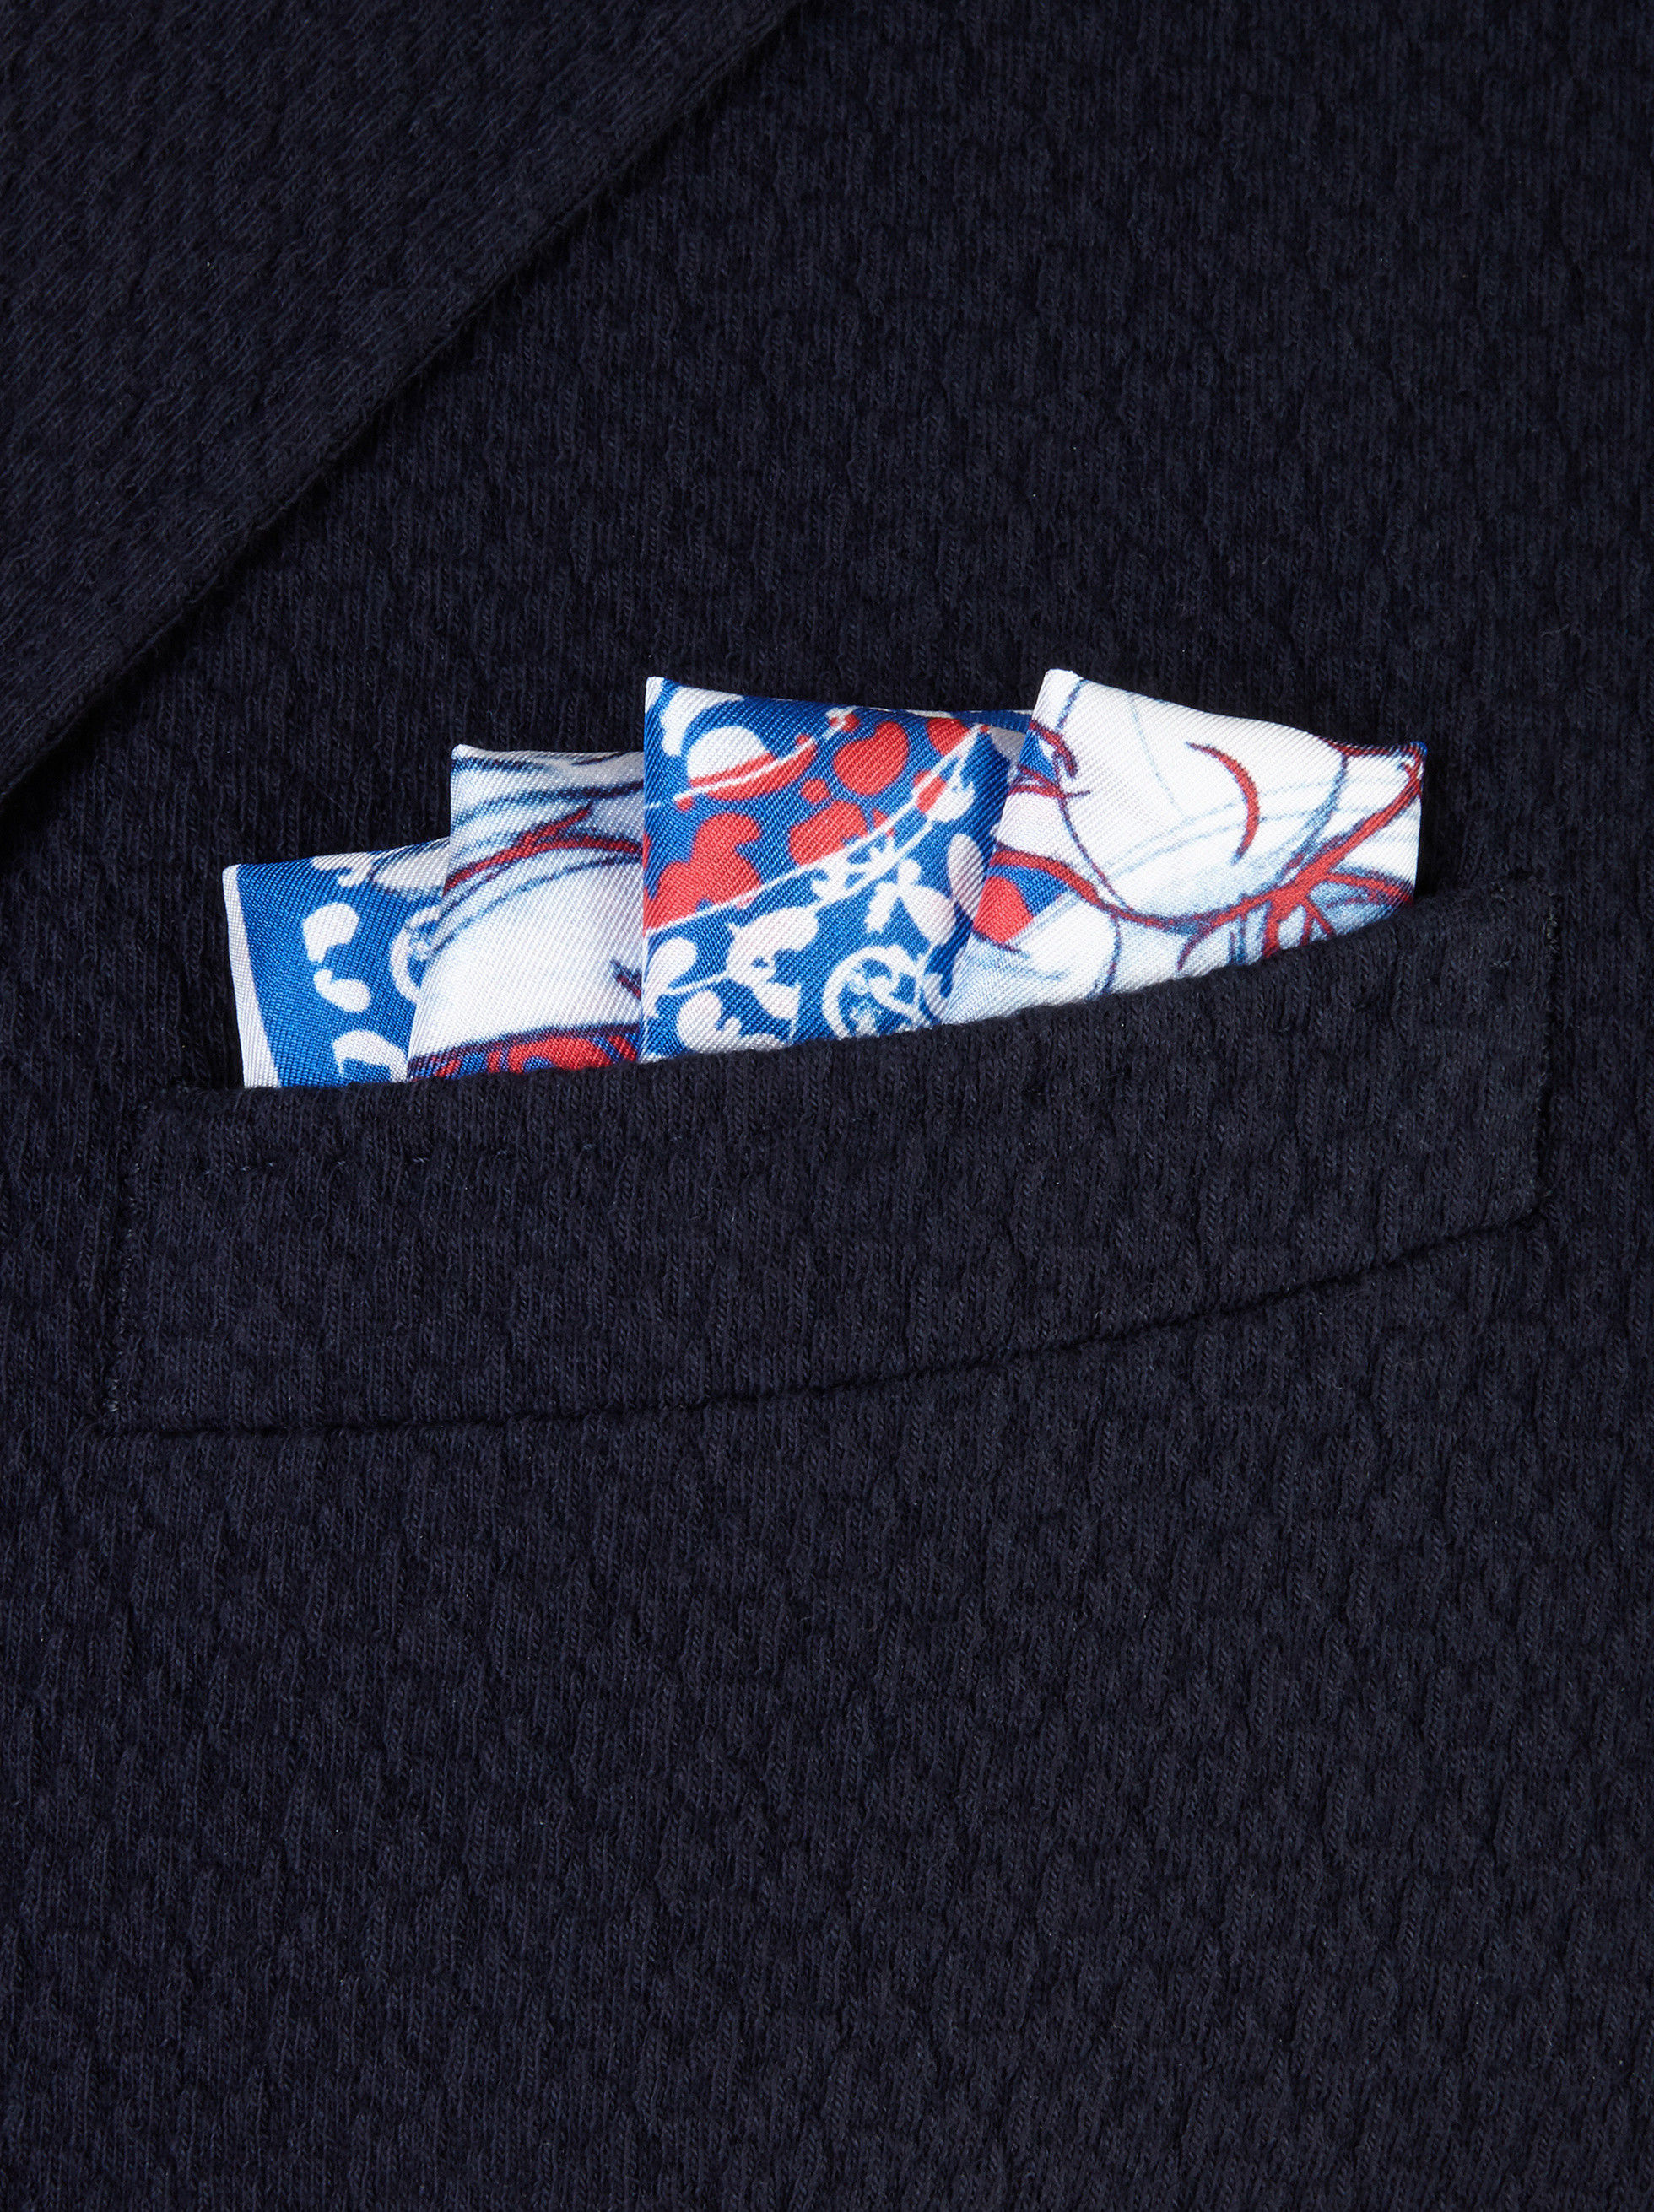 JERRY PRINT POCKET SQUARE